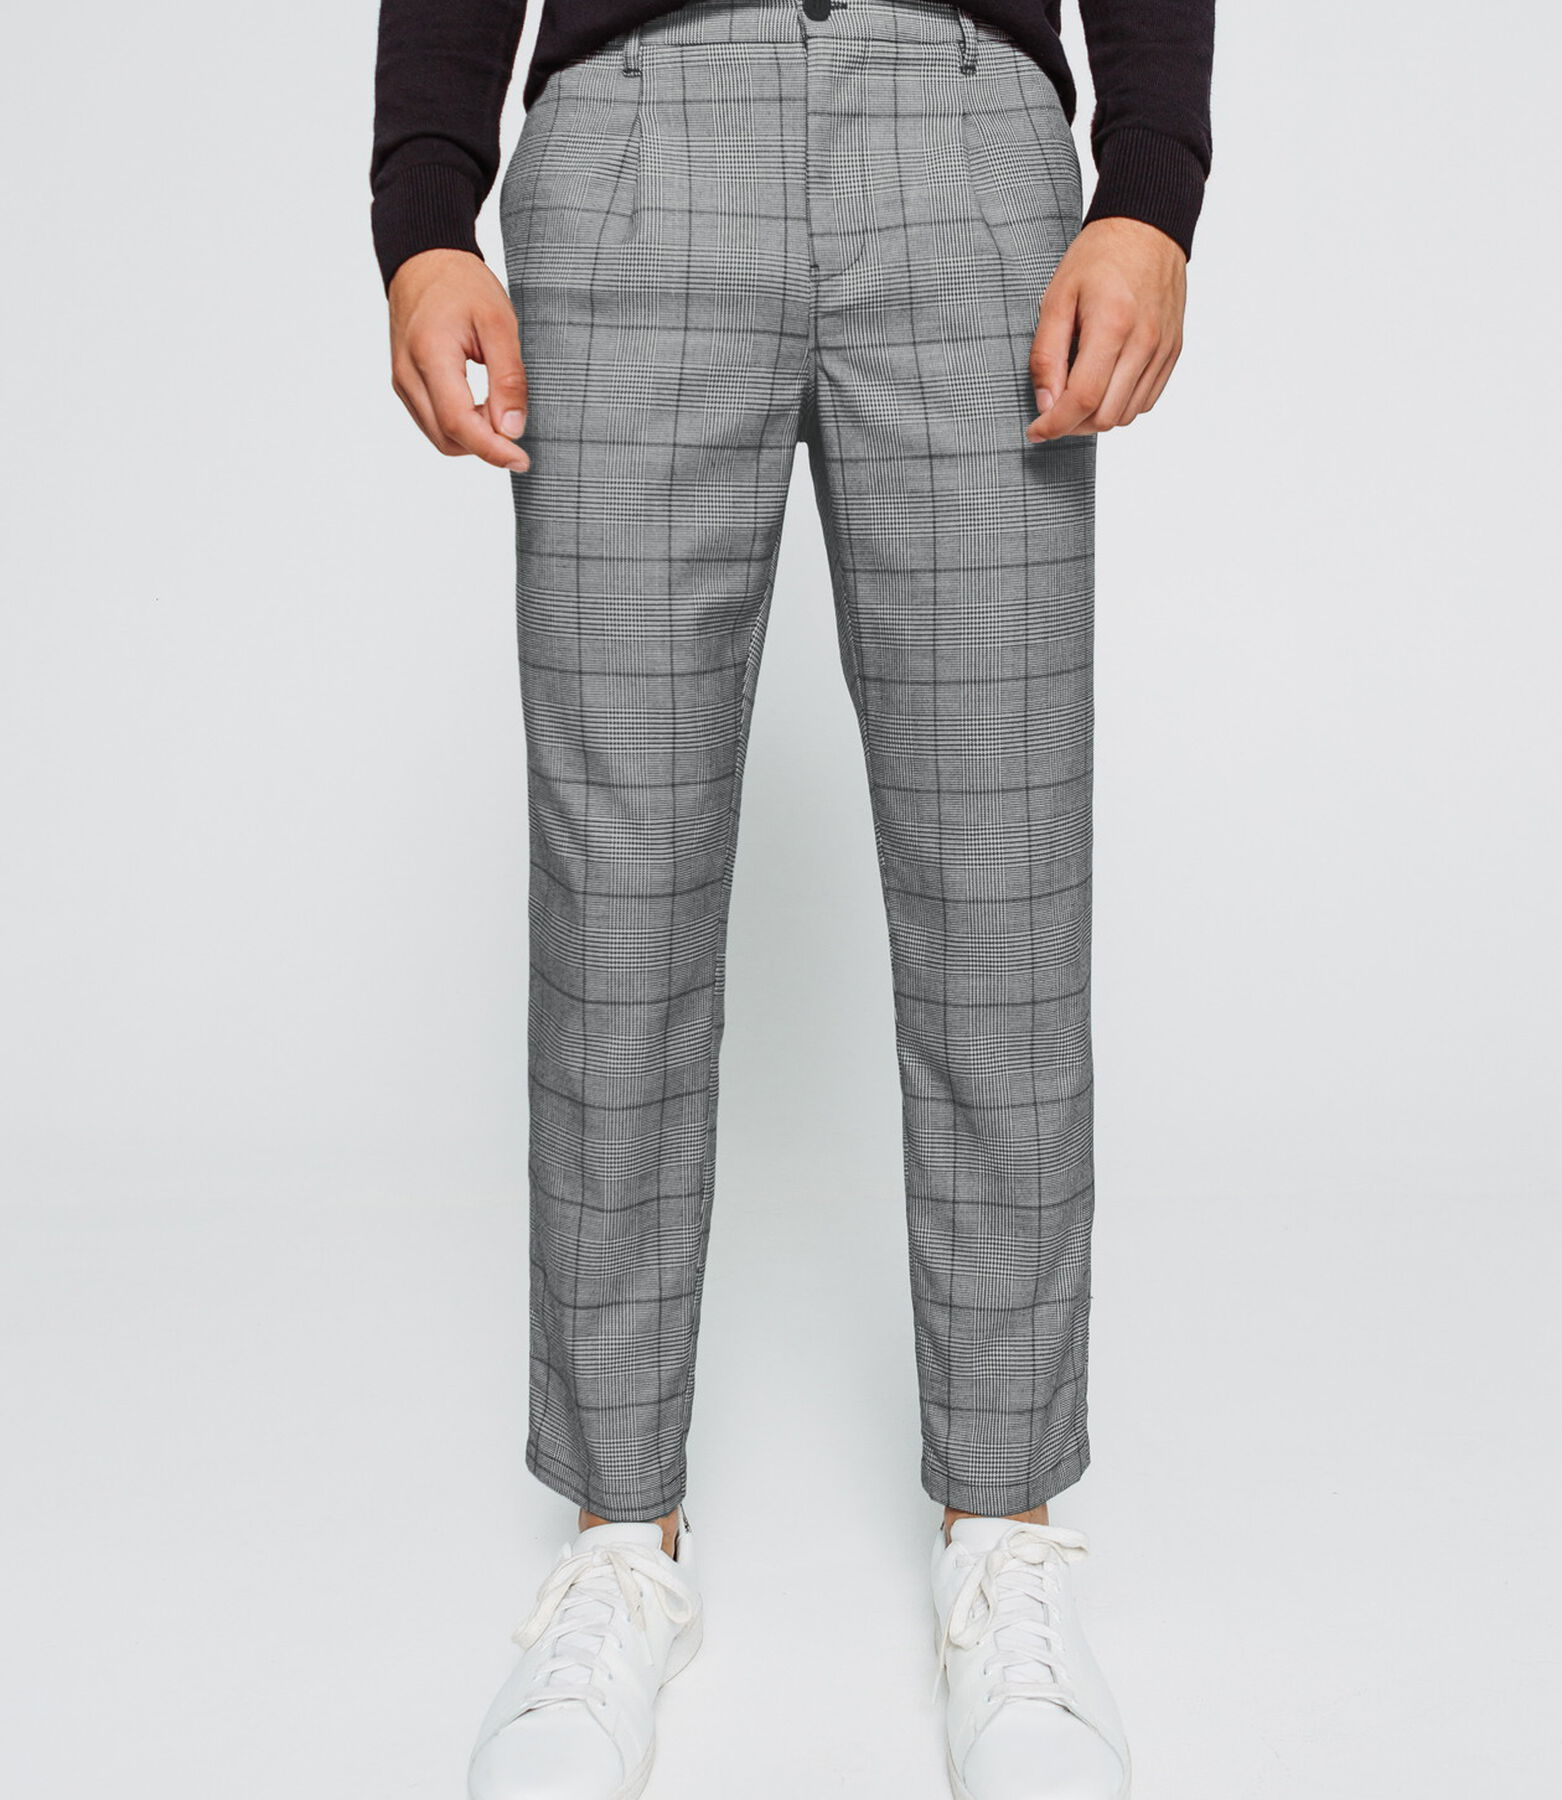 Pantalon de ville à carreaux